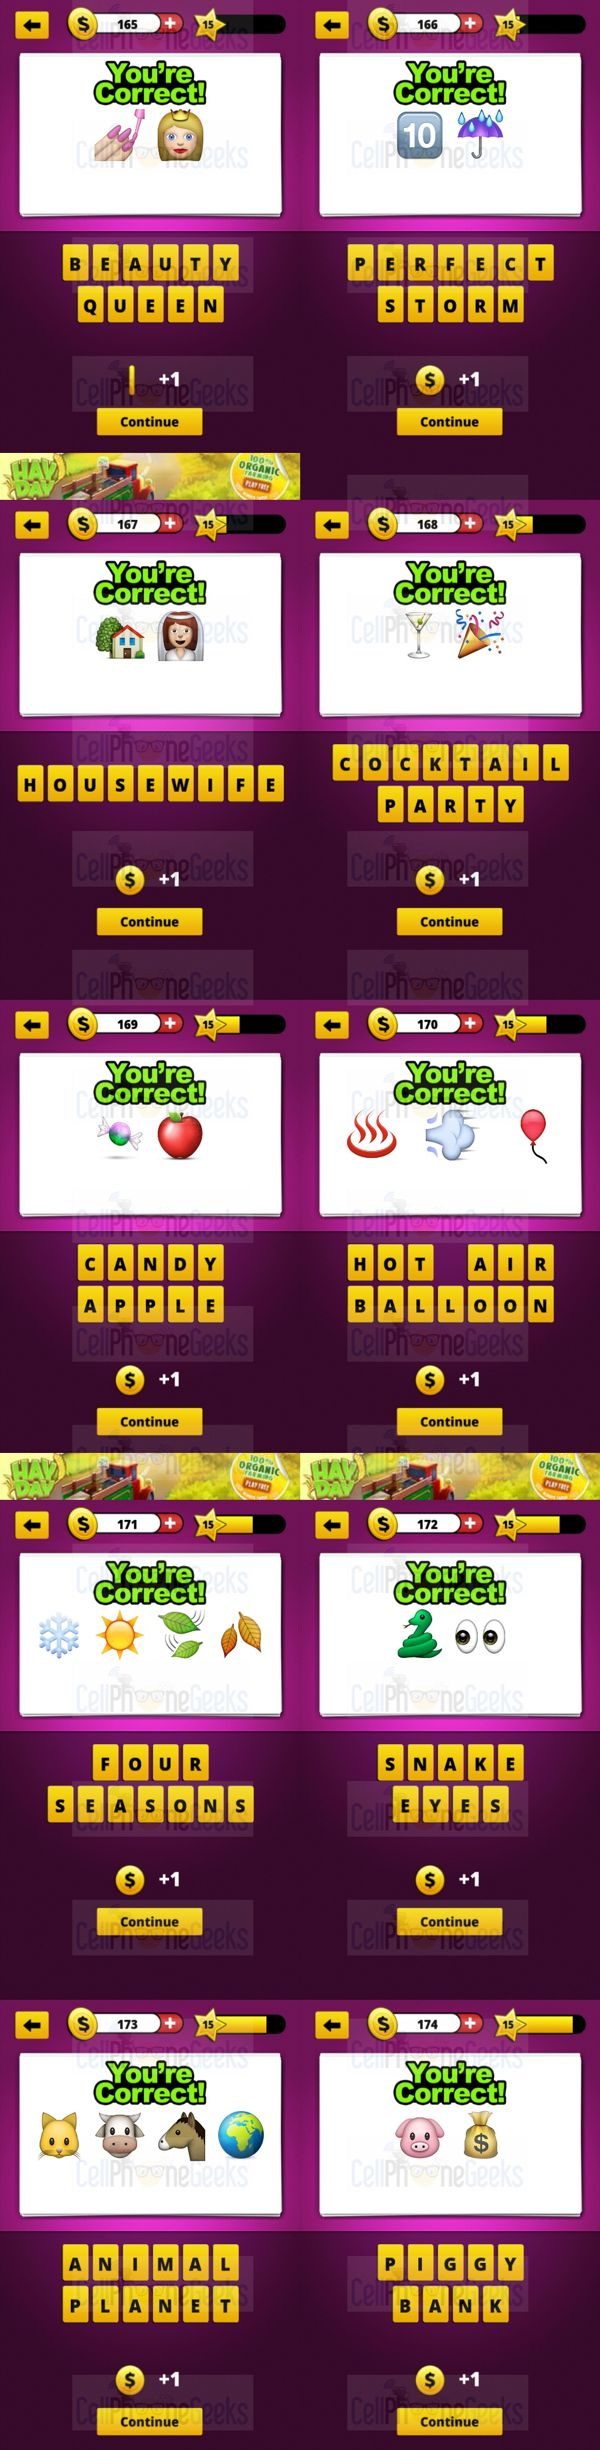 Guess The Emoji Level 15 Answers Cellphonegeeks Guess The Emoji Answers Guess The Emoji Emoji Answers